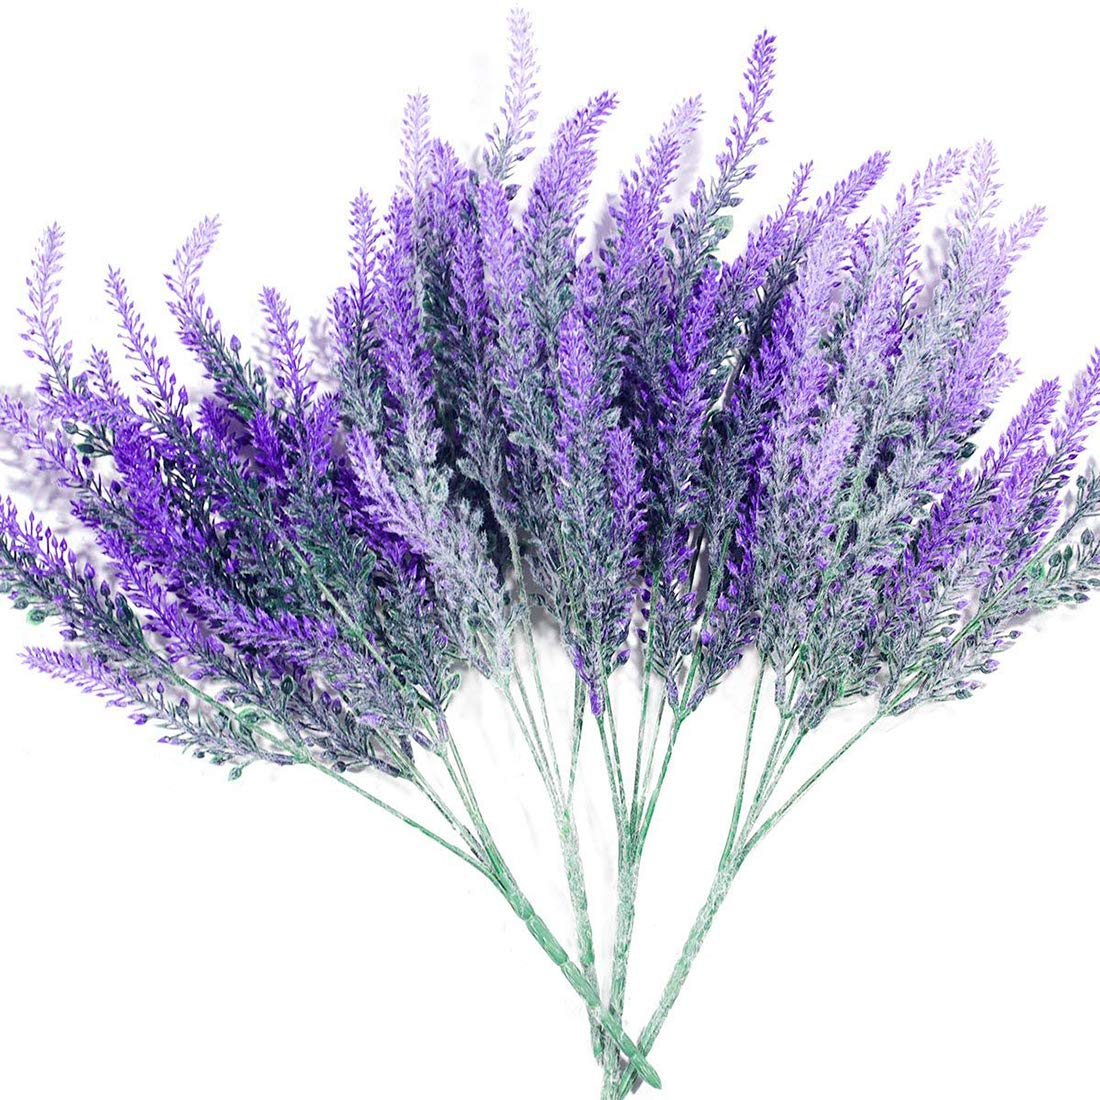 P-flowe-Plastic-Flower-Artificial-Flowers-Flocked-Lavender-Bouquet-Romantic-Fake-Lavender-Bunch-Simulation-Plant-Flower-in-Purple-Artificial-Plant-Home-Wedding-Garden-Decor-4-Pcs-Purple